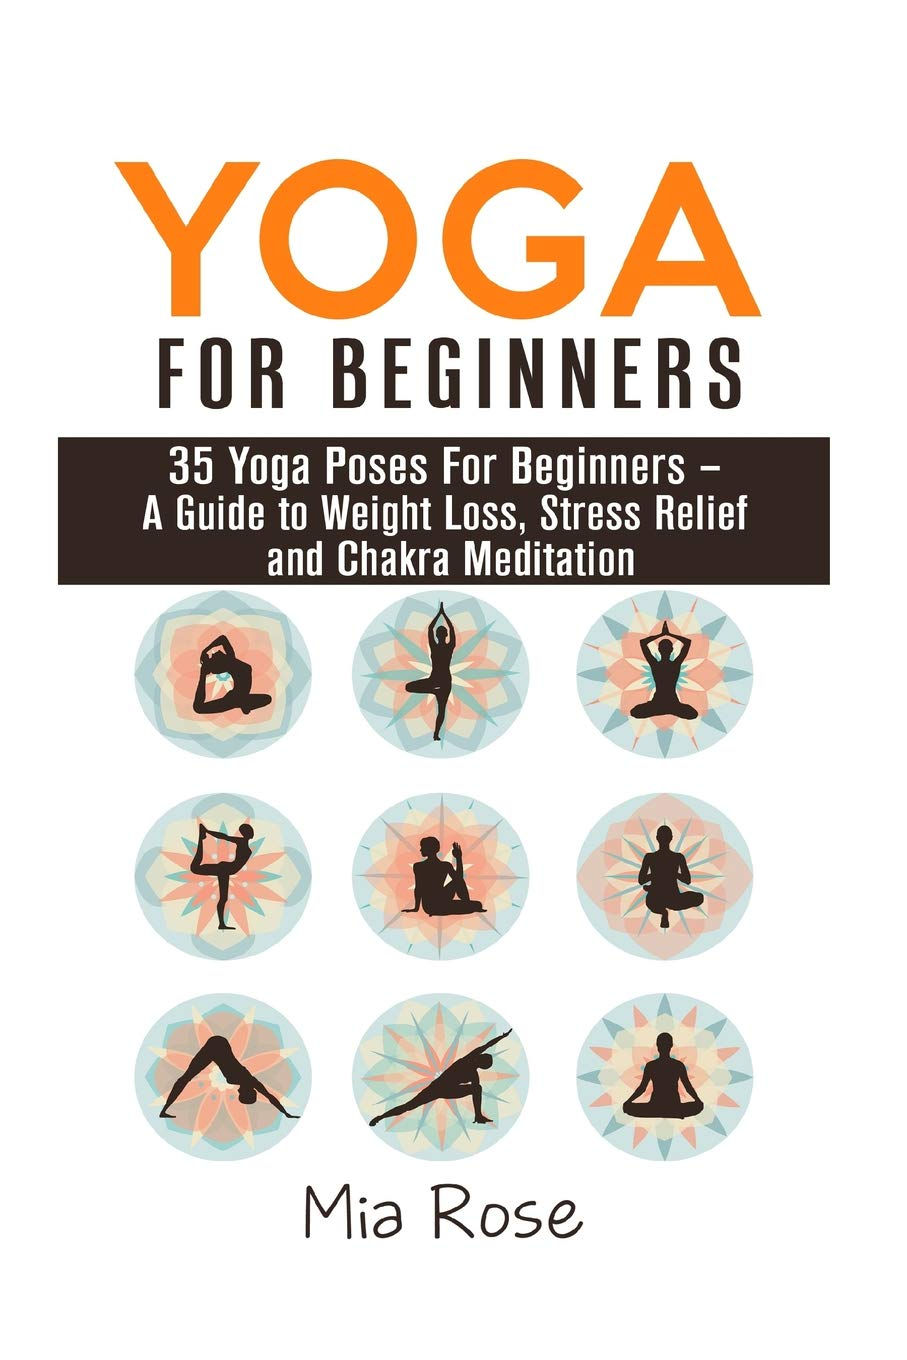 Yoga For Beginners: 35 Yoga Poses For Women, Men, Kids and ...